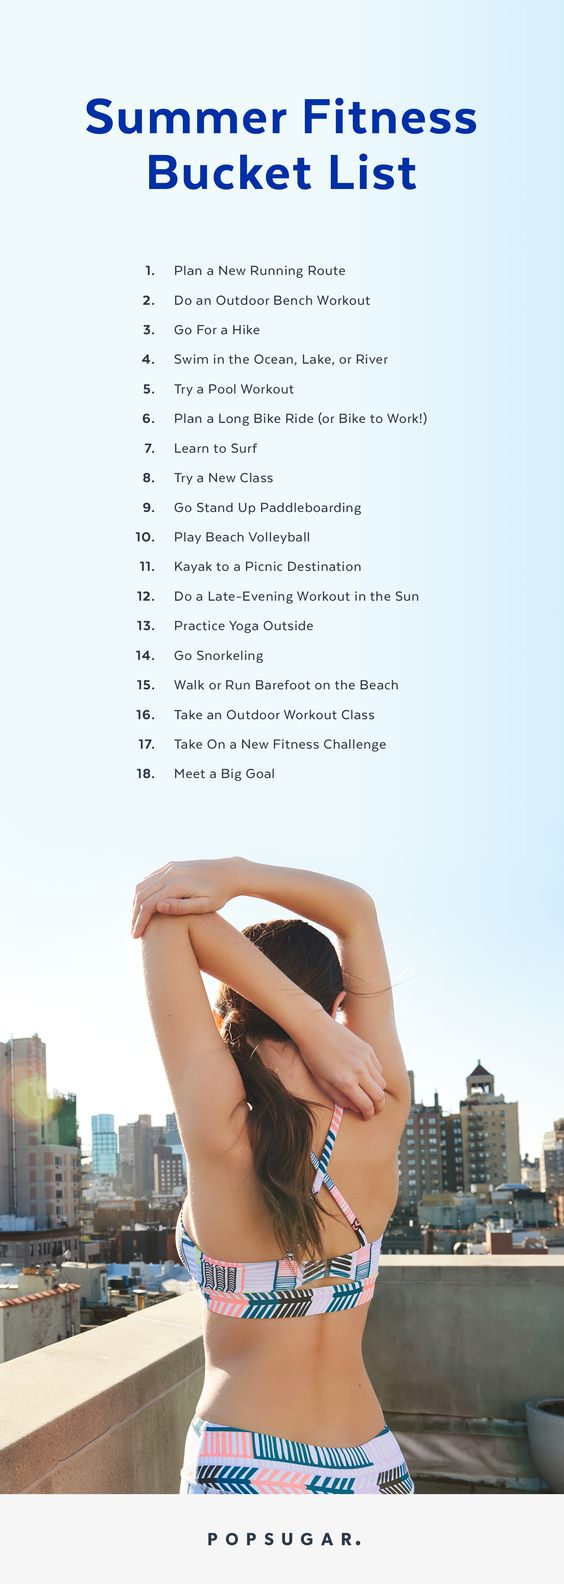 Summer Fitness Checklist